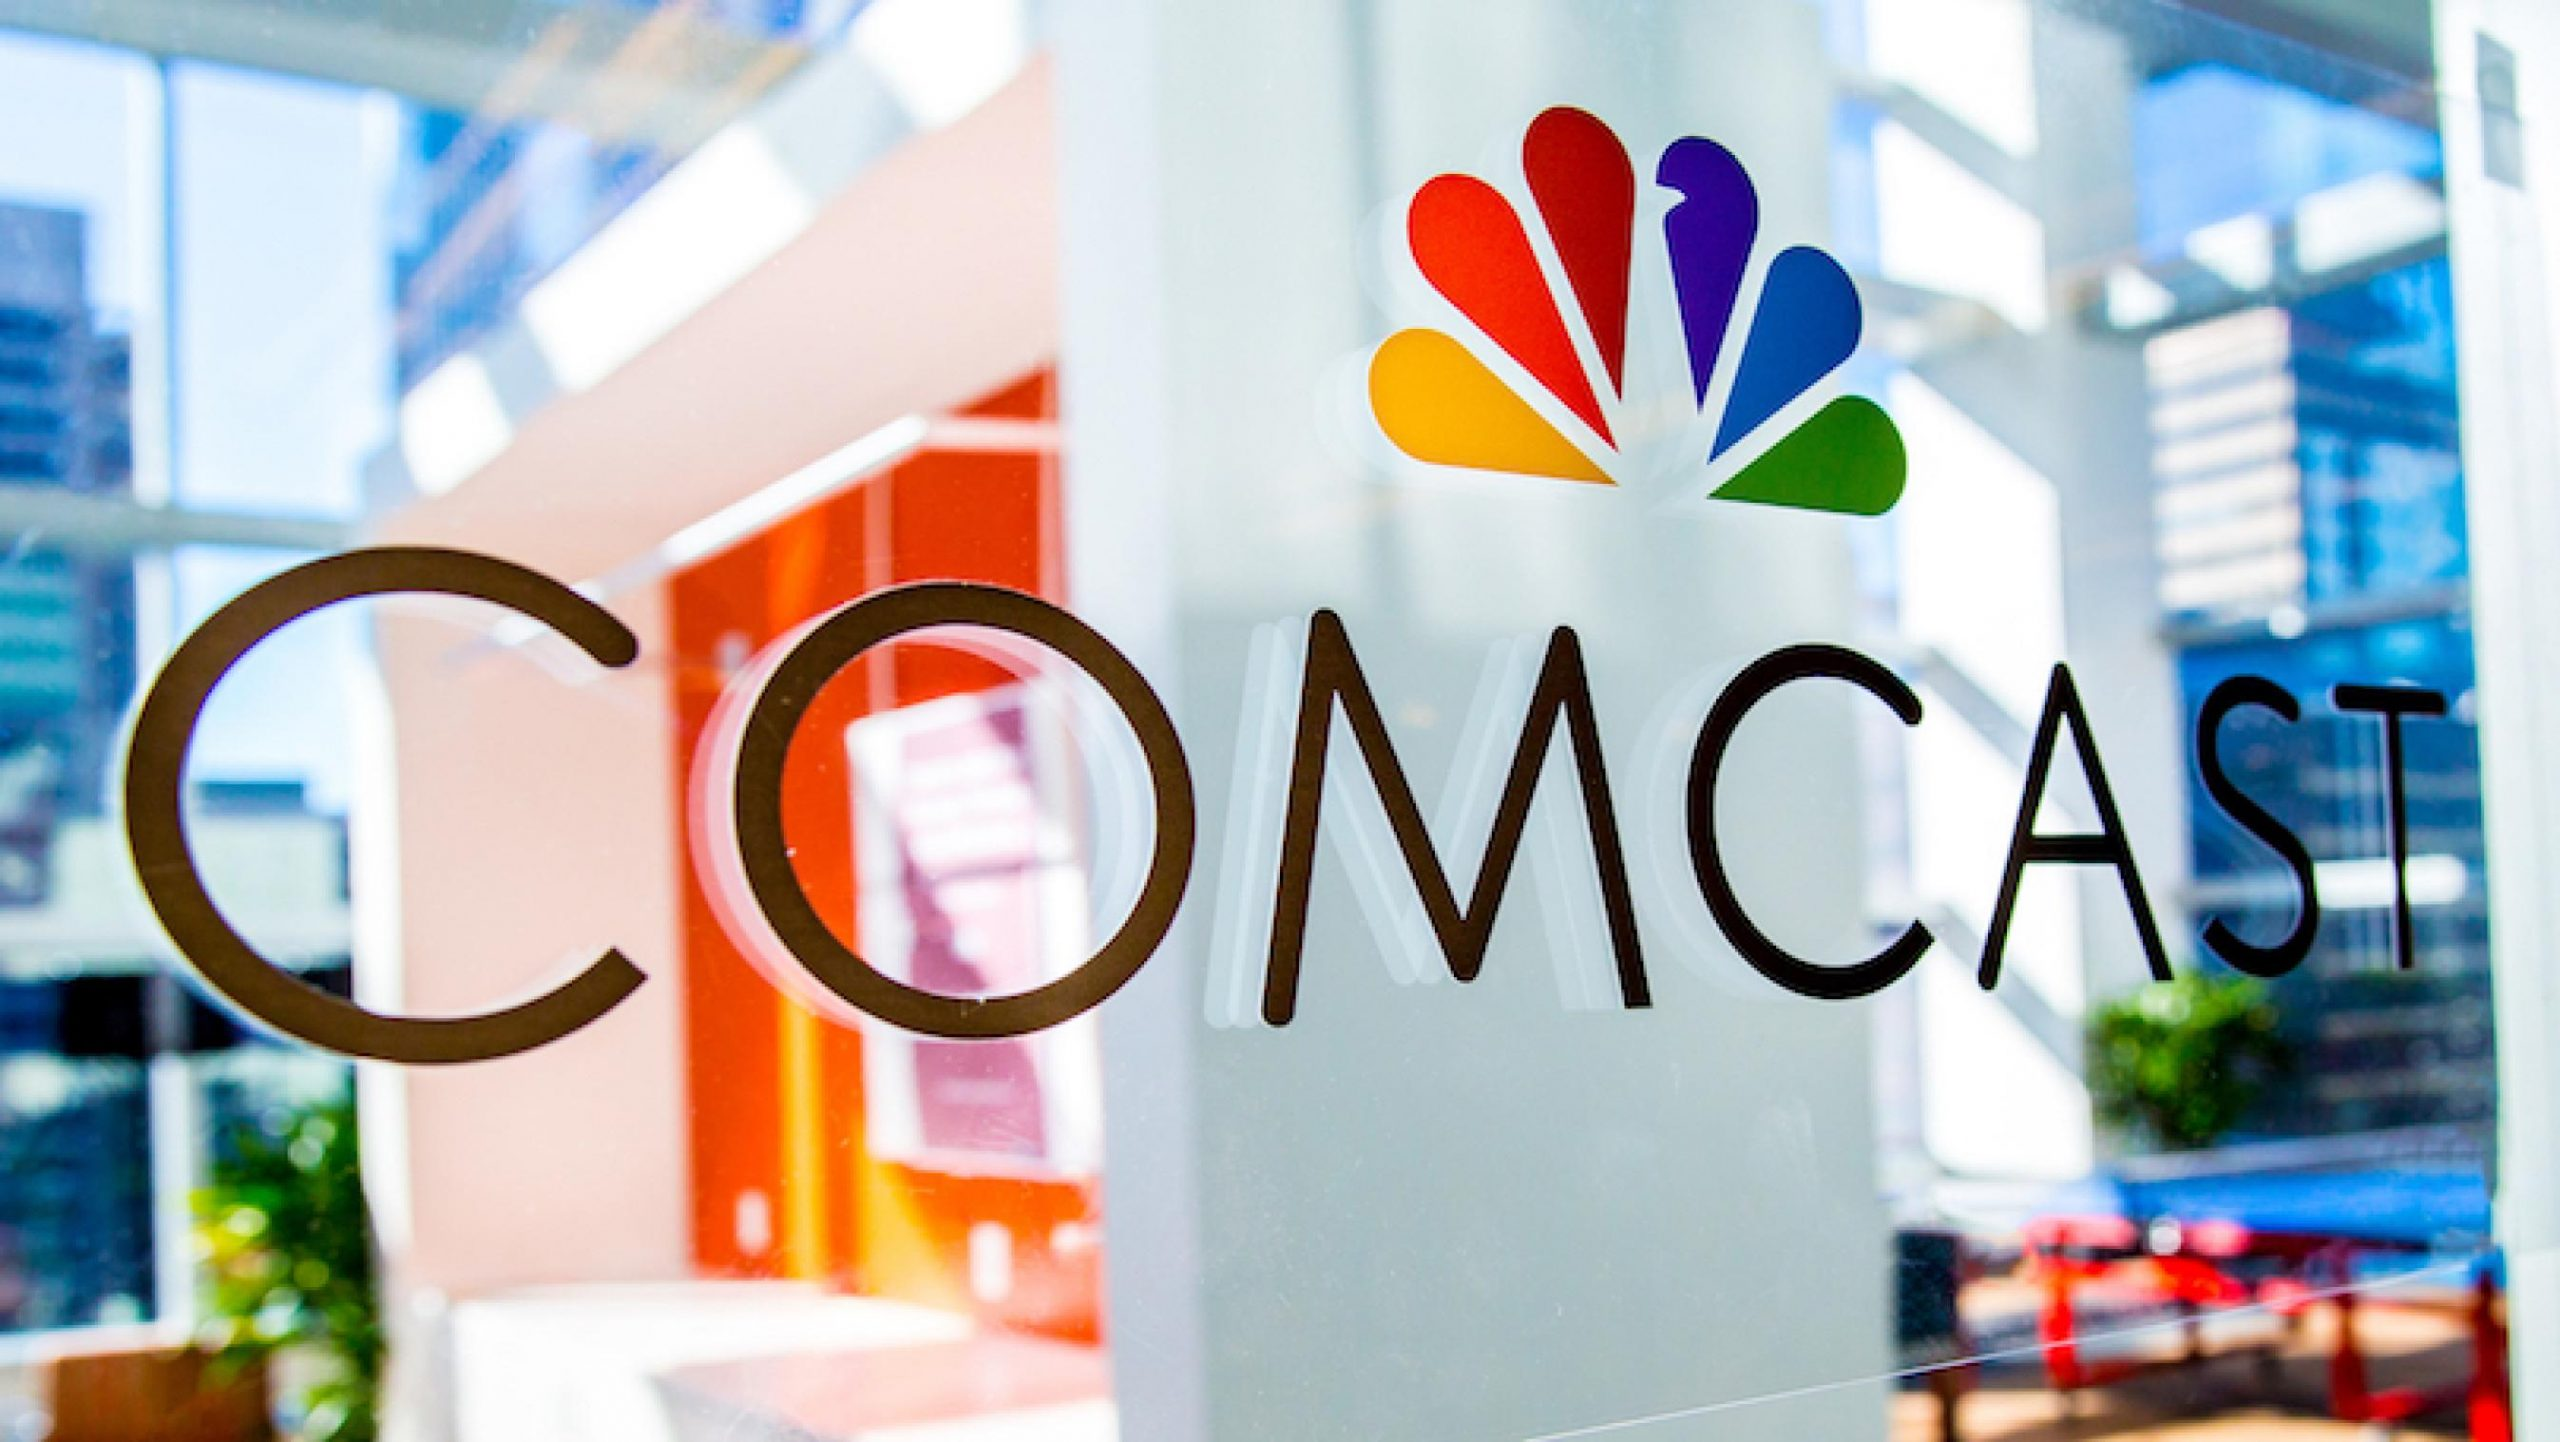 How To Get Online Comcast Customer Service Representative Jobs